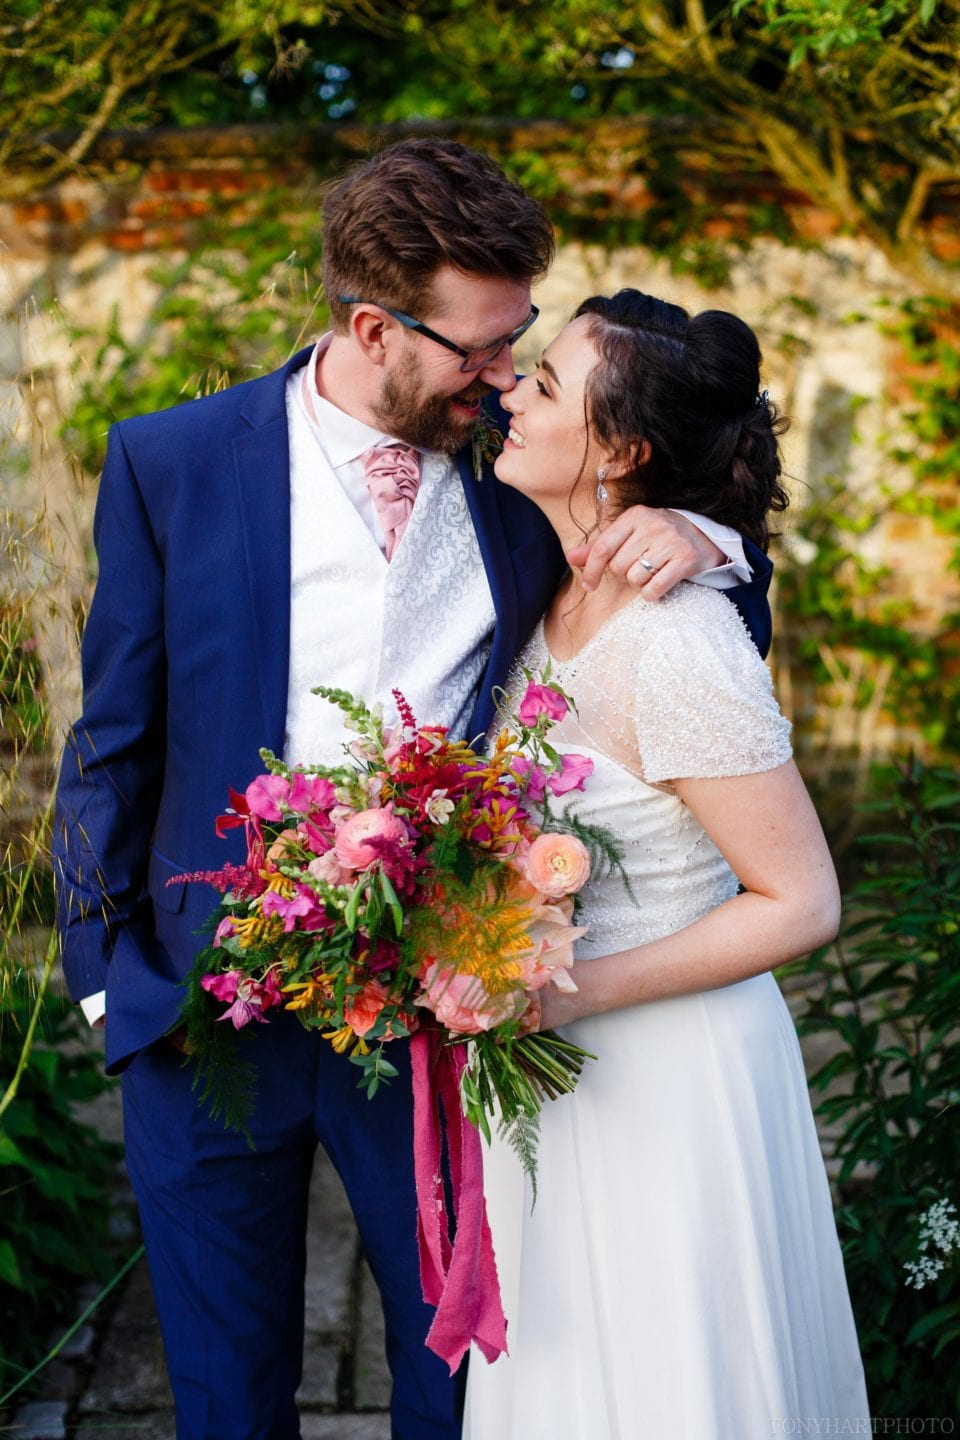 Laura & Andy enjoying the evening sunshine at Bury Court Barn. Stunning flowers by Hannah Berry Flowers.